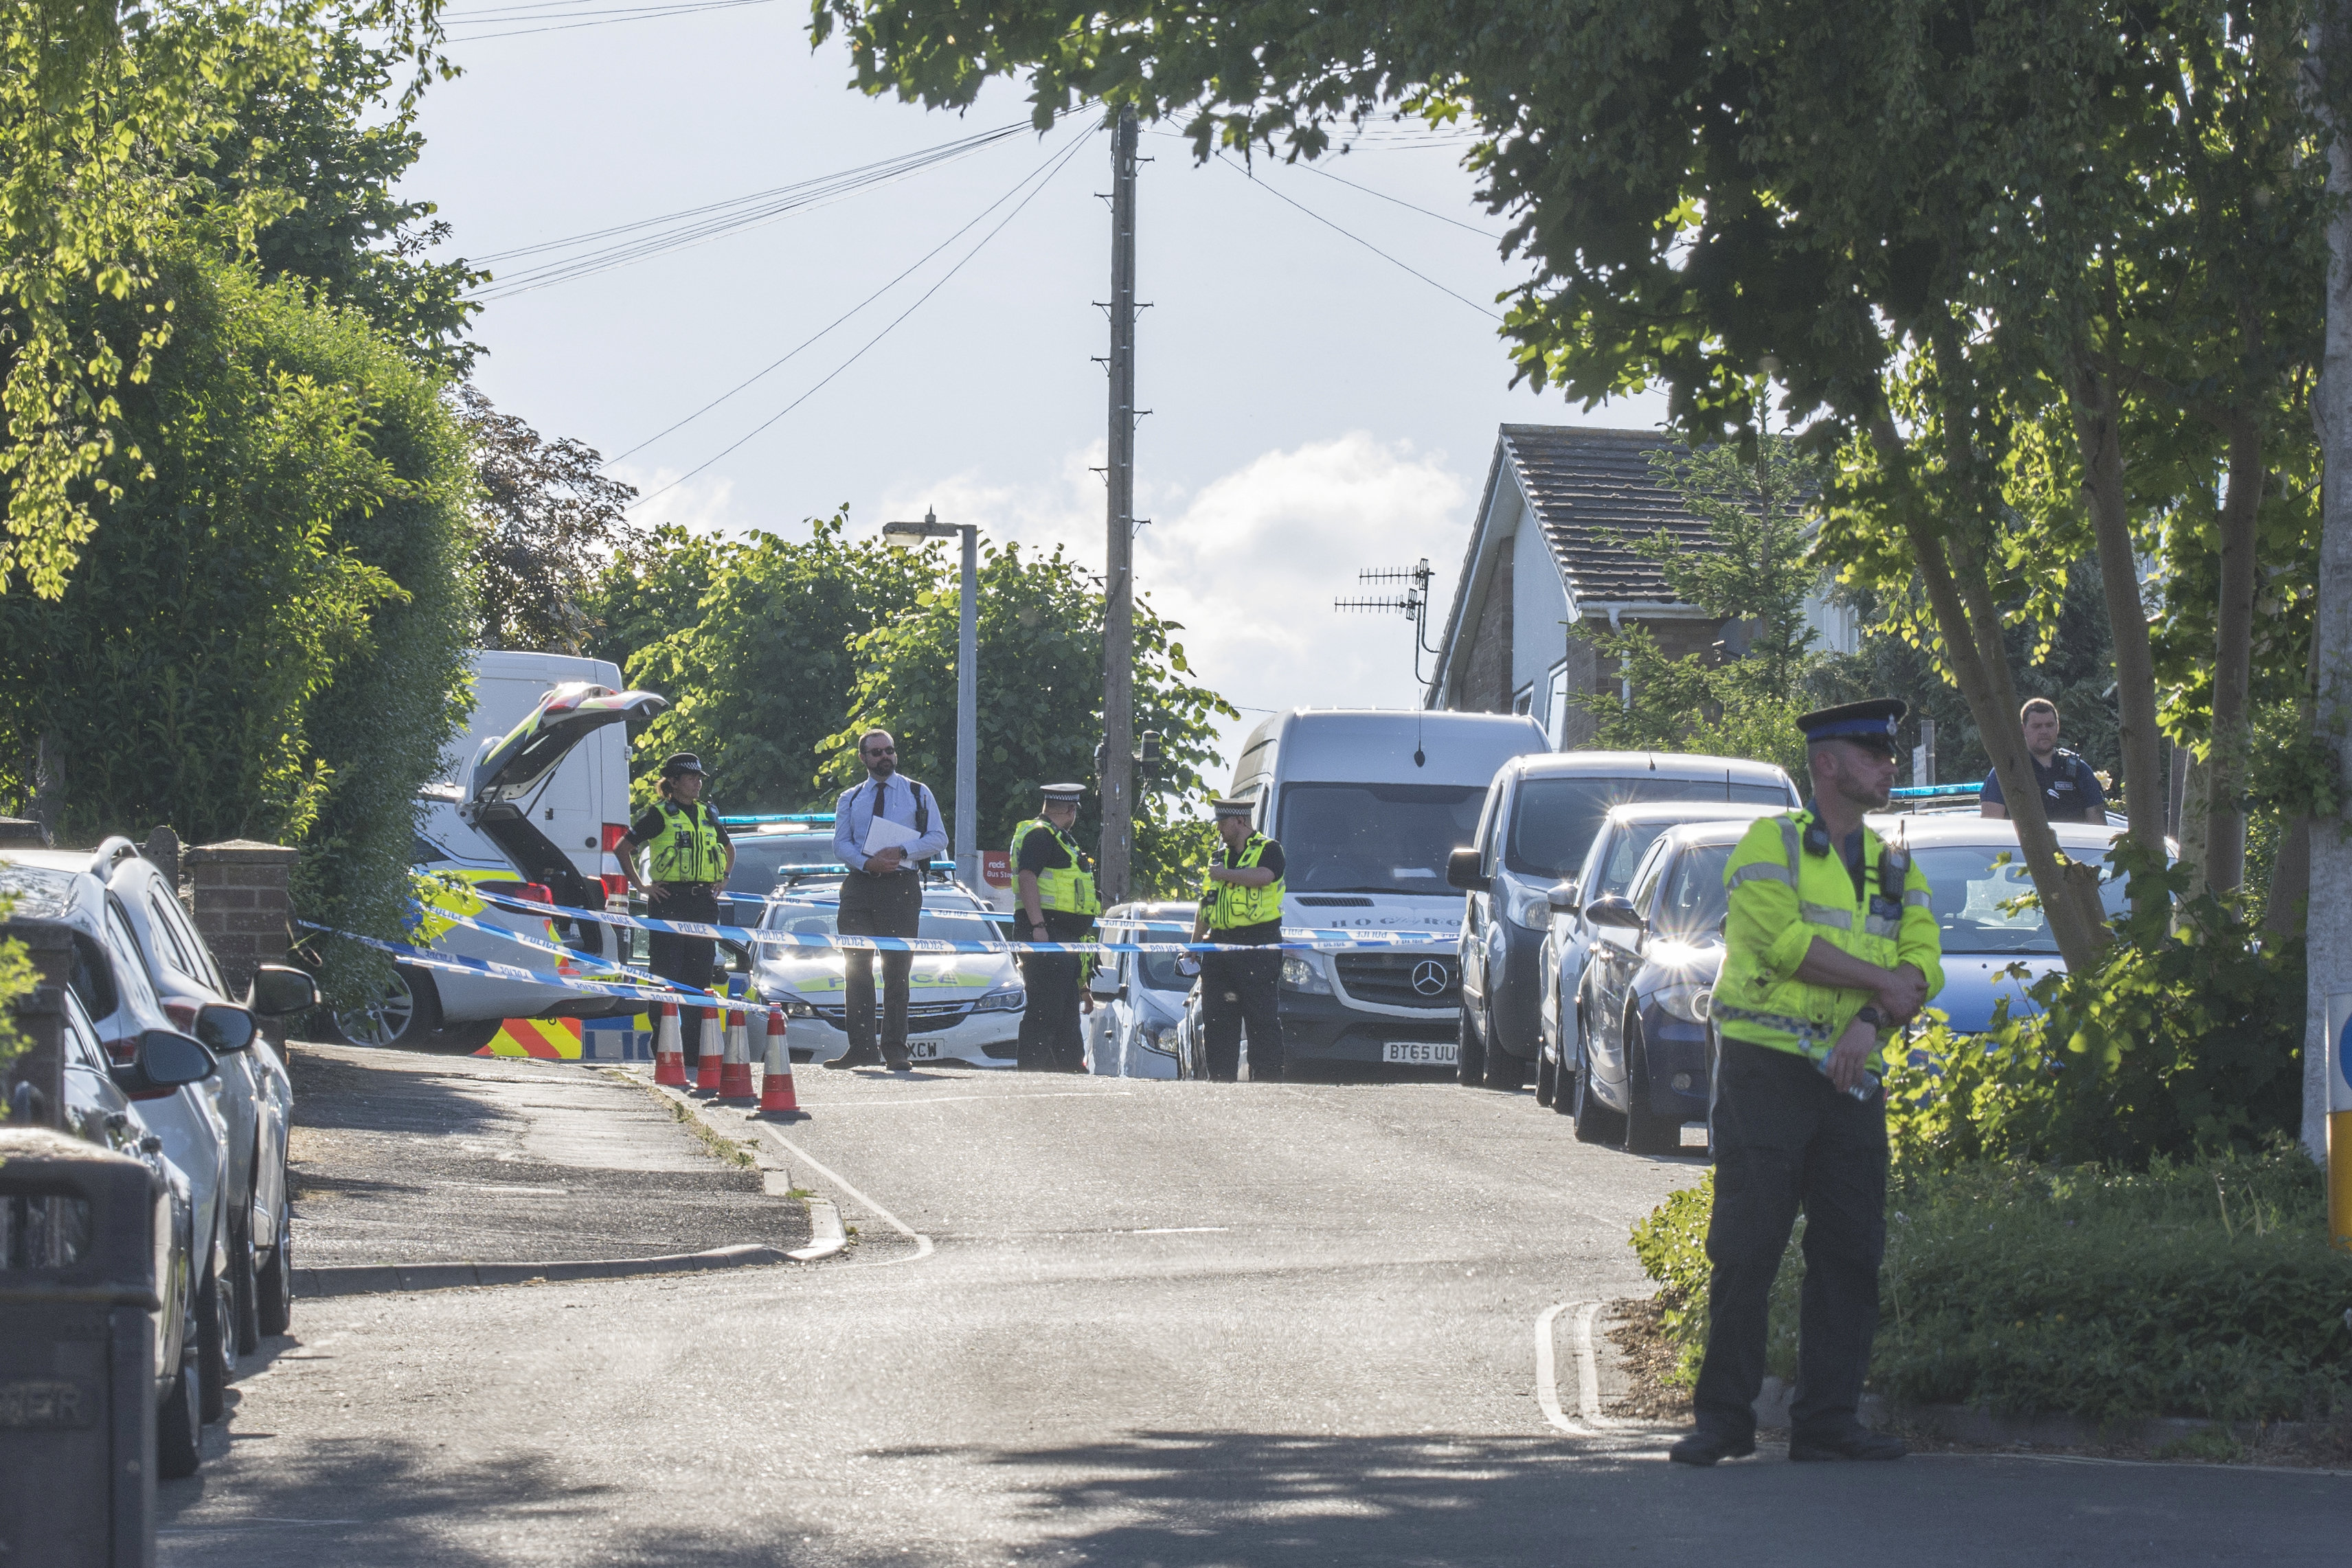 Two women die at house in Salisbury as man in his 30s arrested on suspicion of murder - The Sun